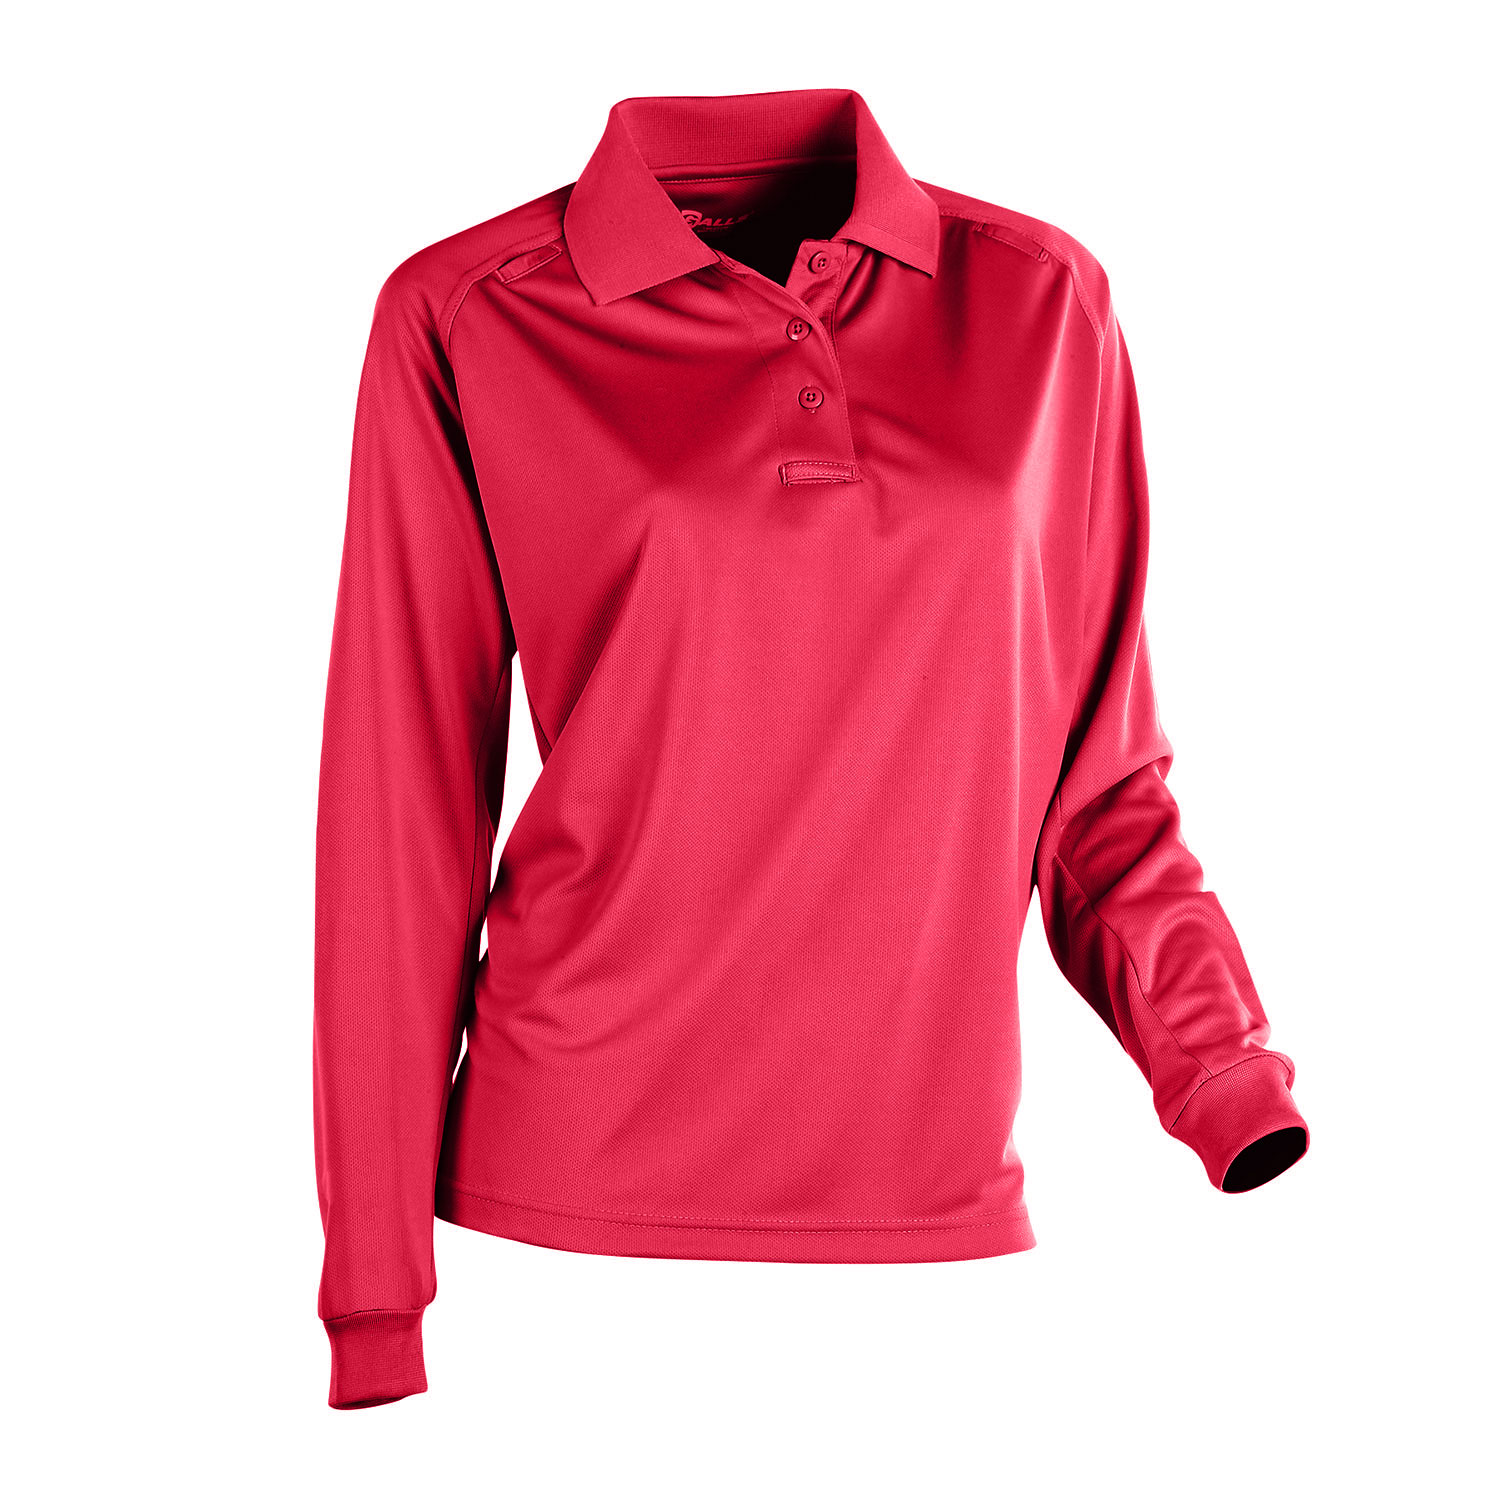 6e42342ba7 Womens Long Sleeve Red Polo Shirts – EDGE Engineering and Consulting ...